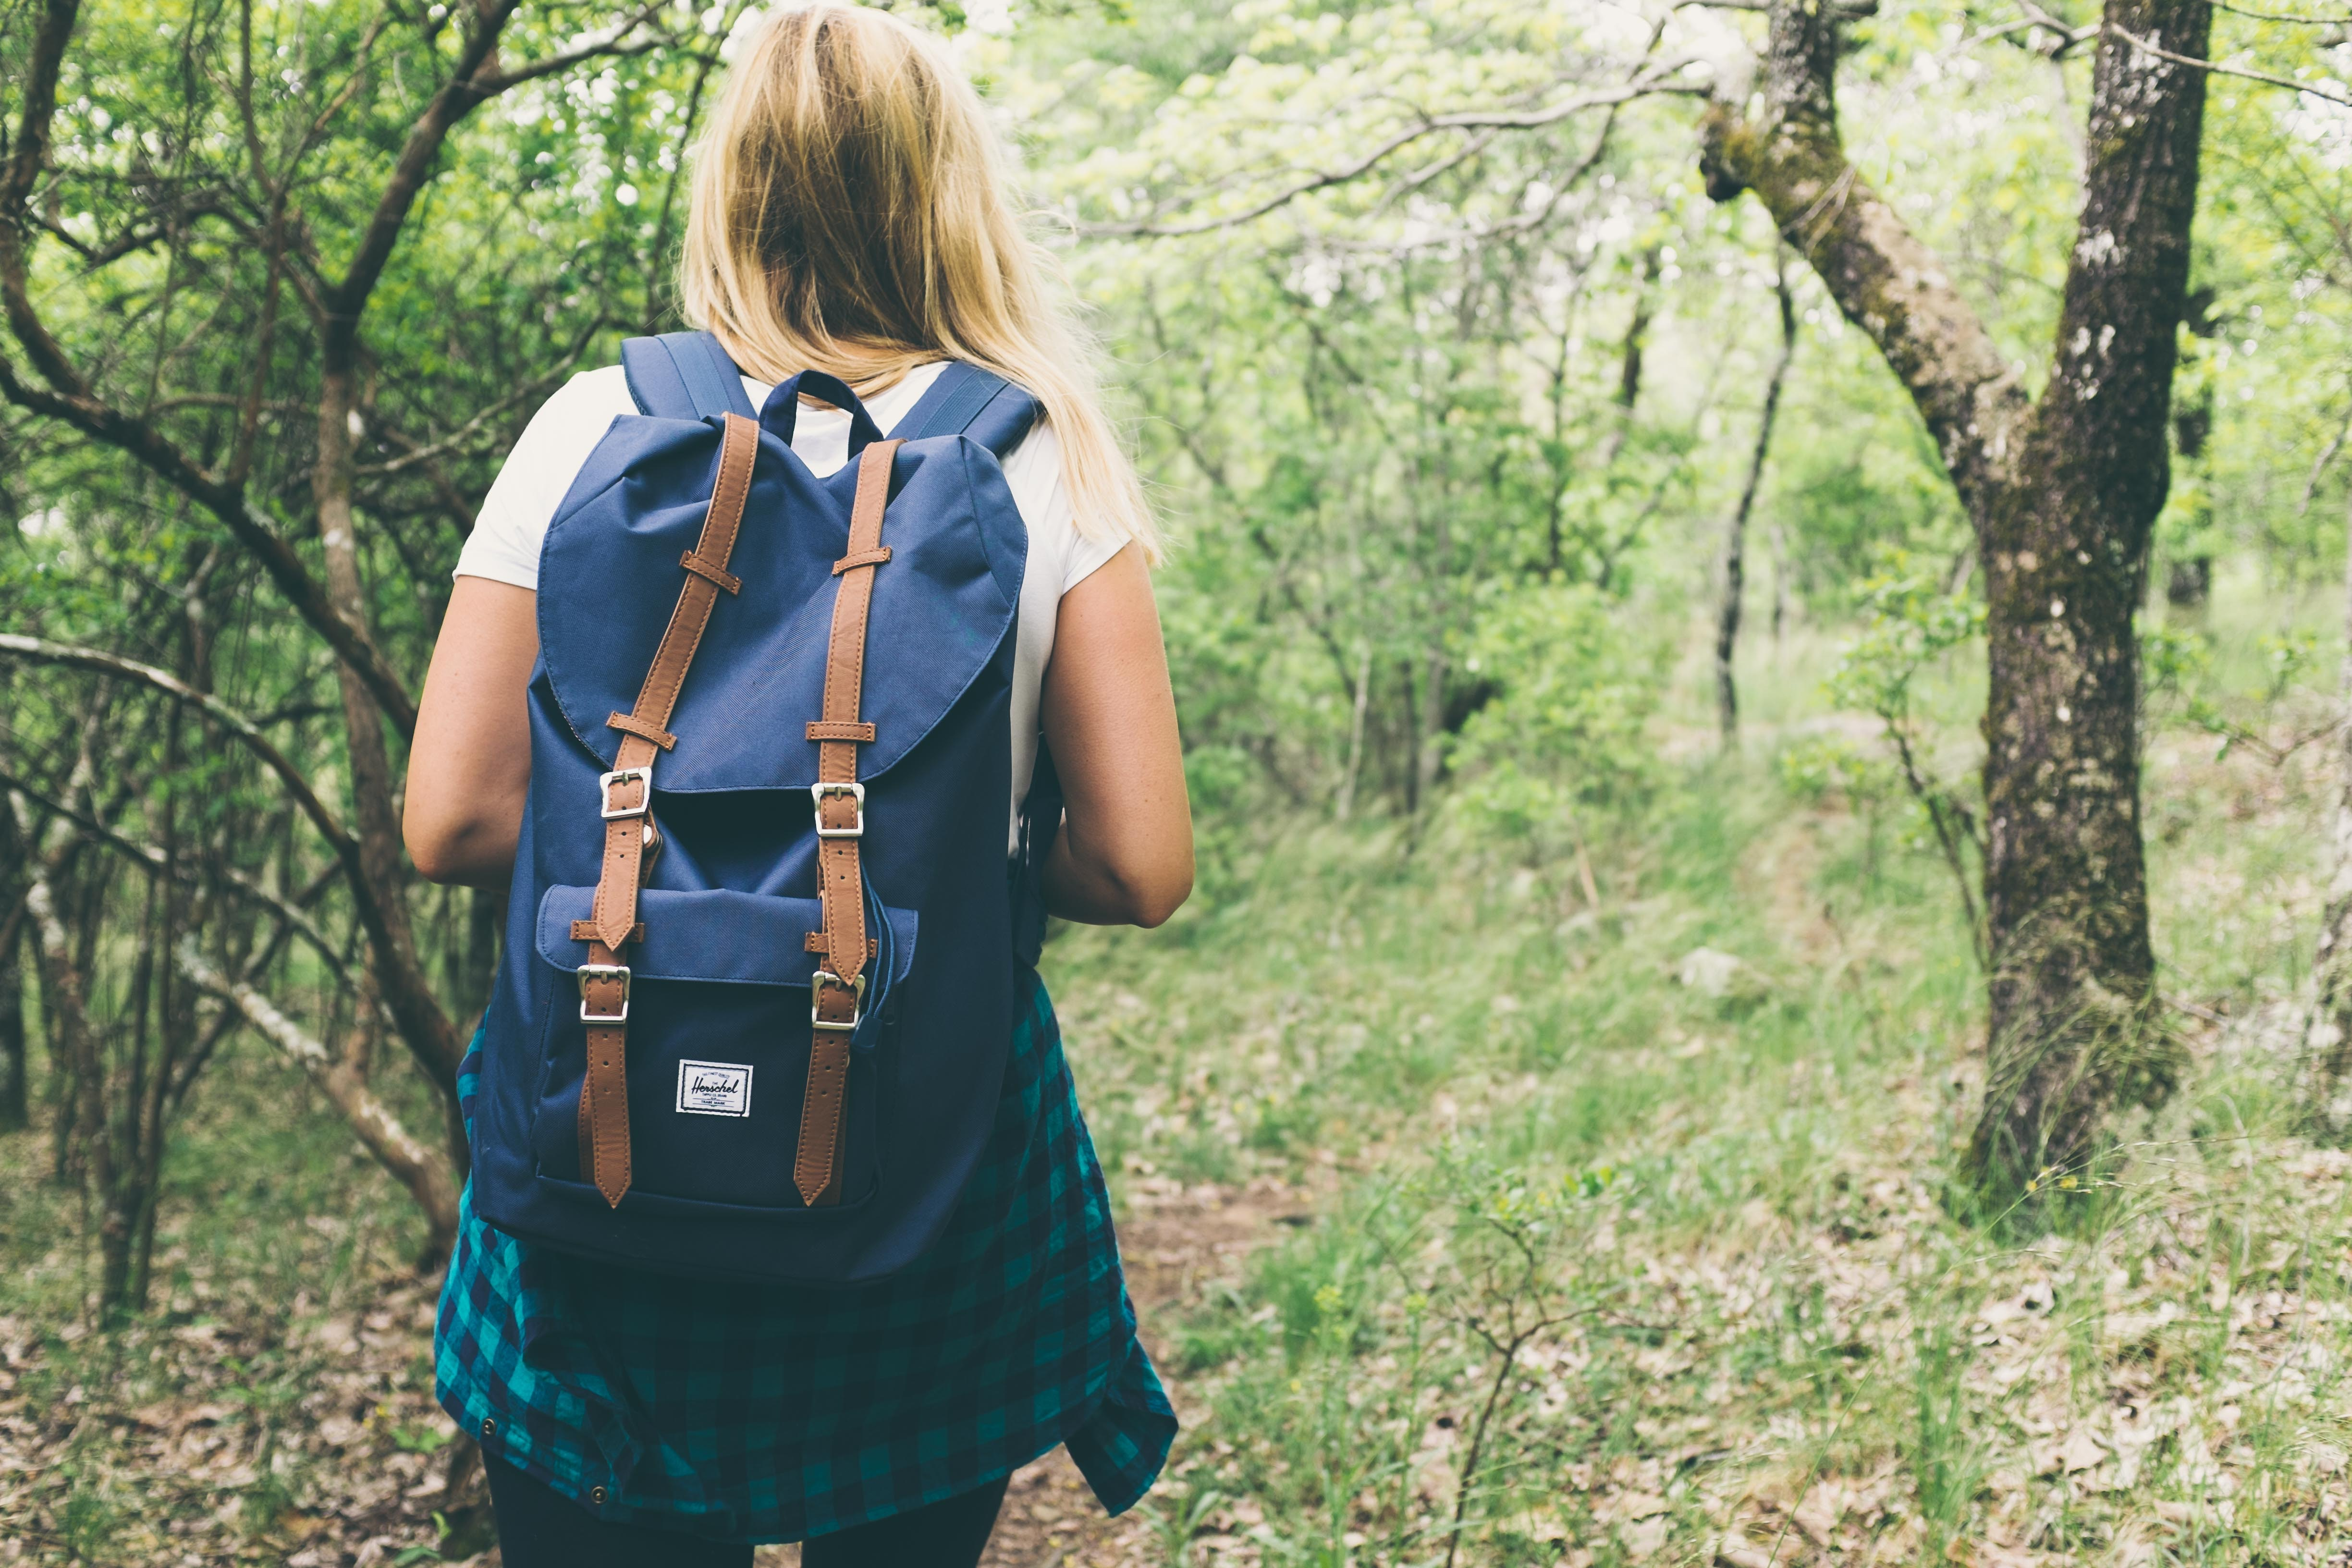 woman wearing backpack walking on forest